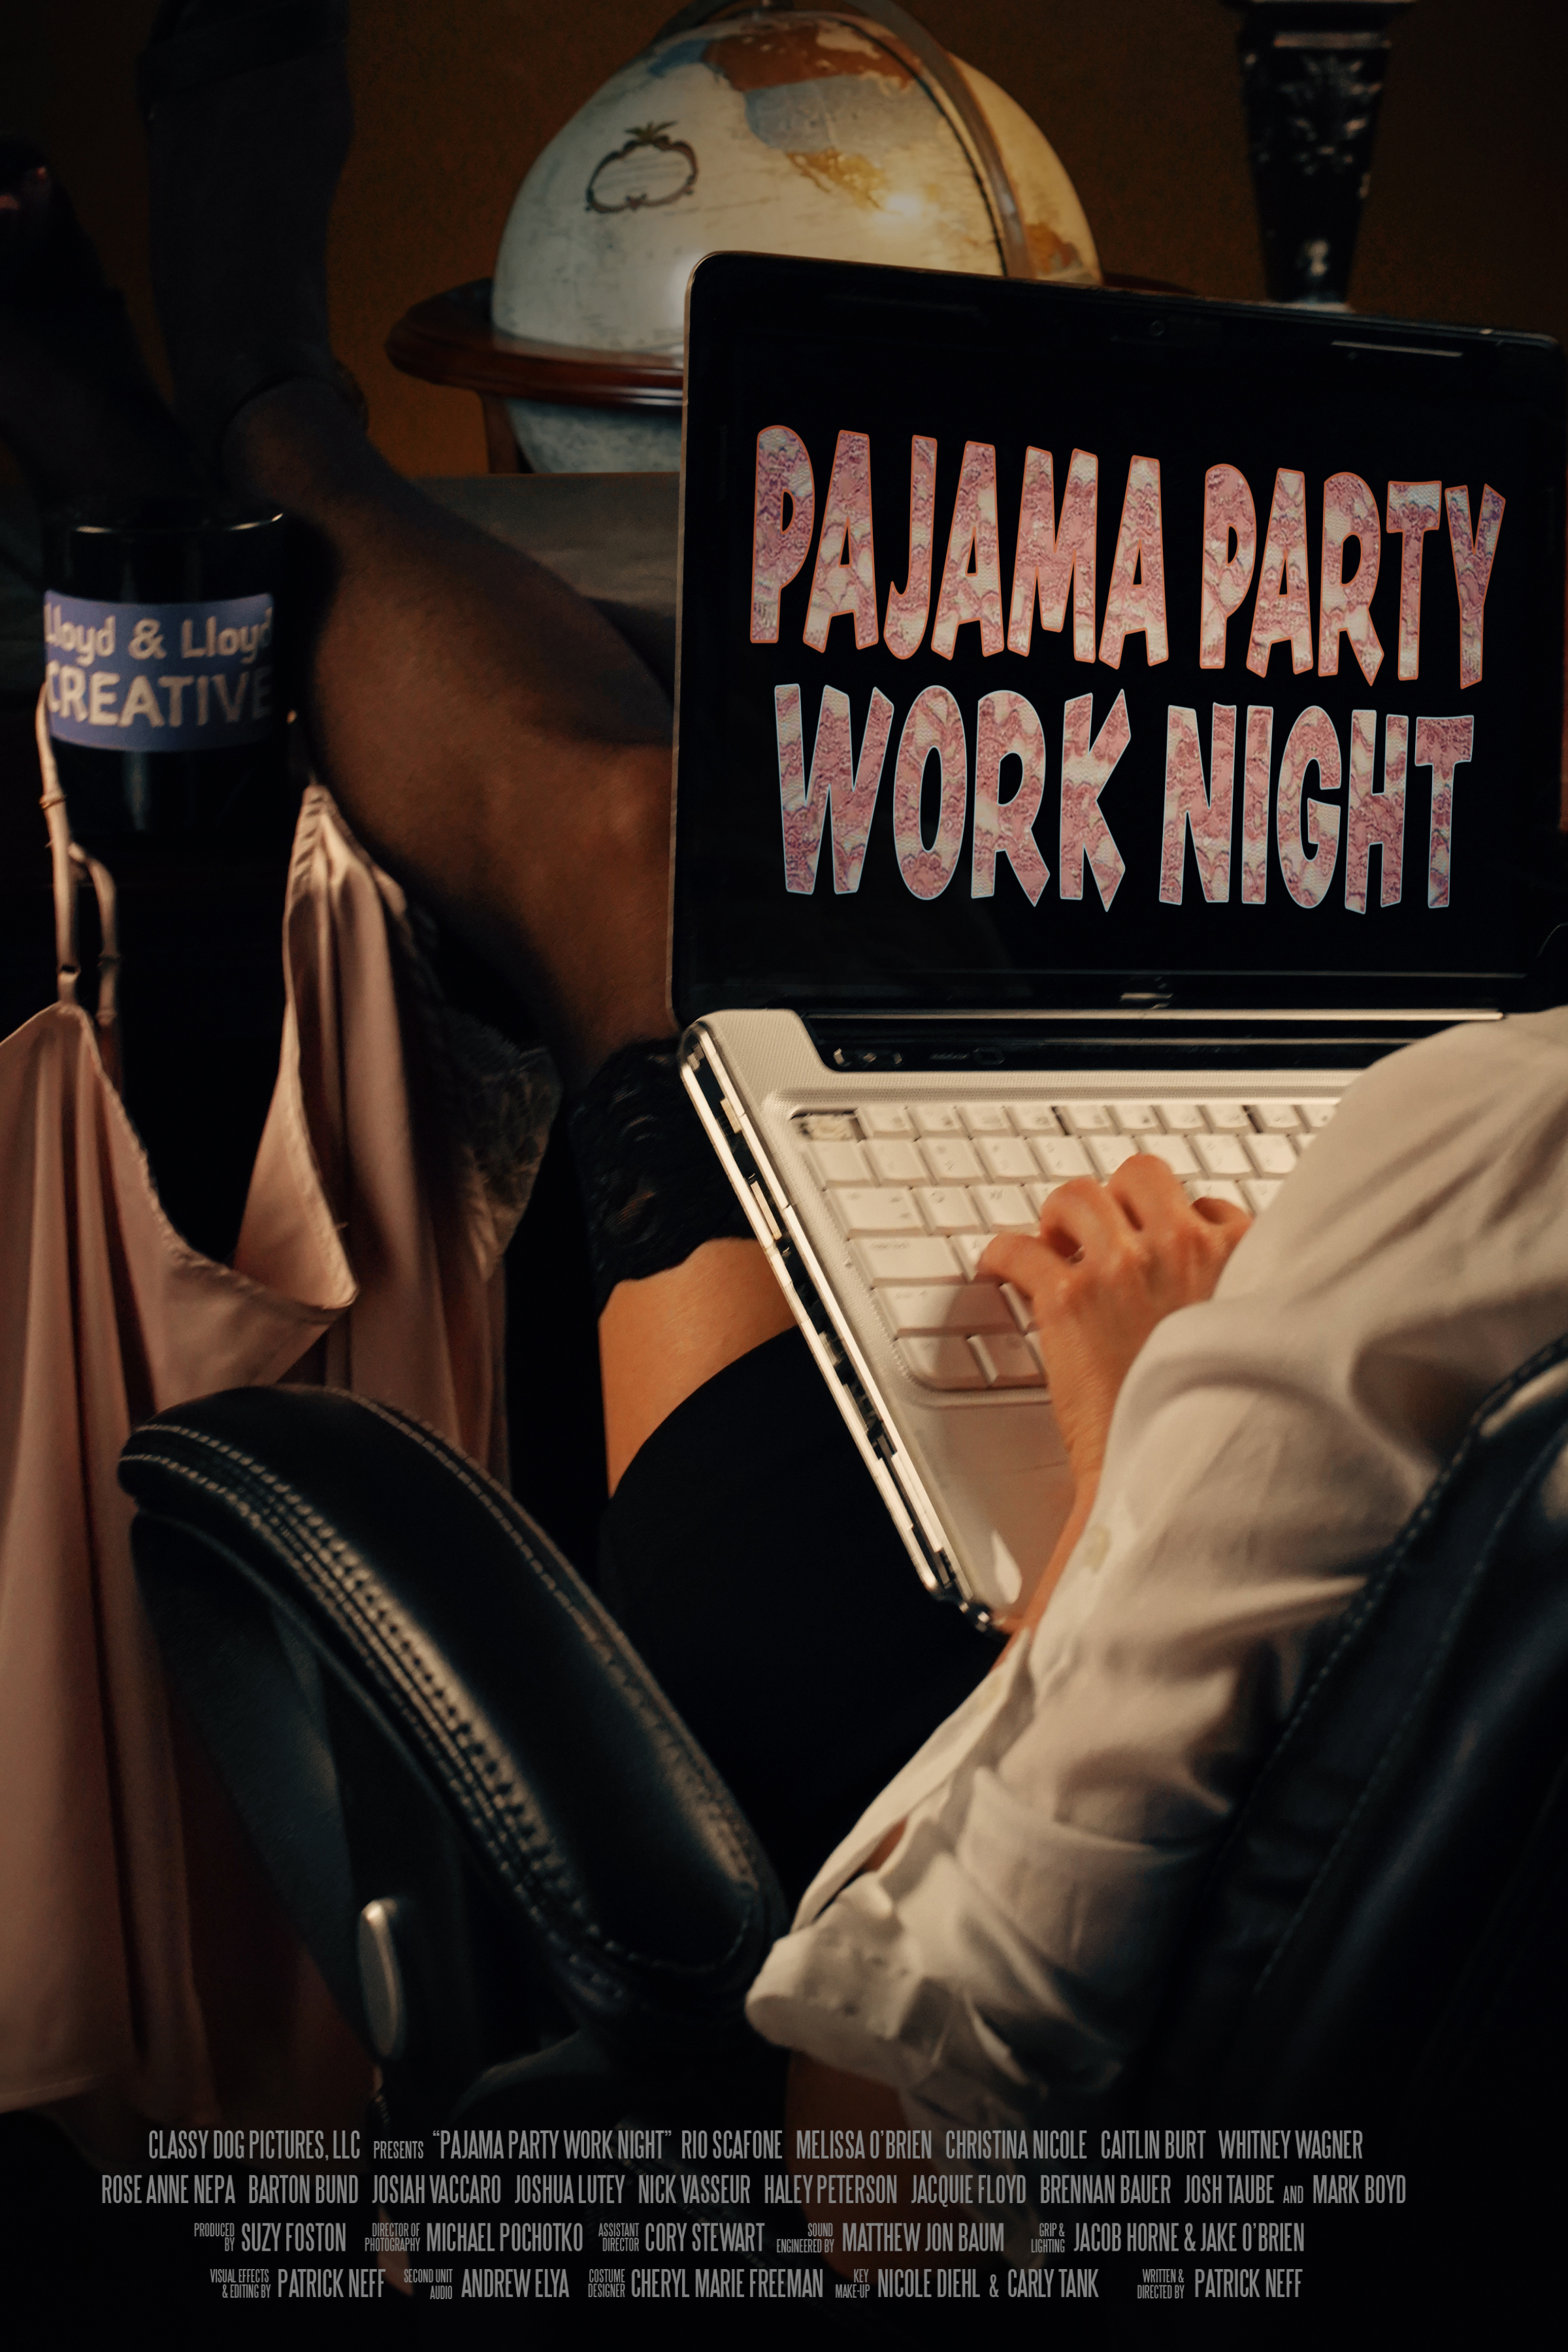 PAJAMA PARTY WORK NIGHT